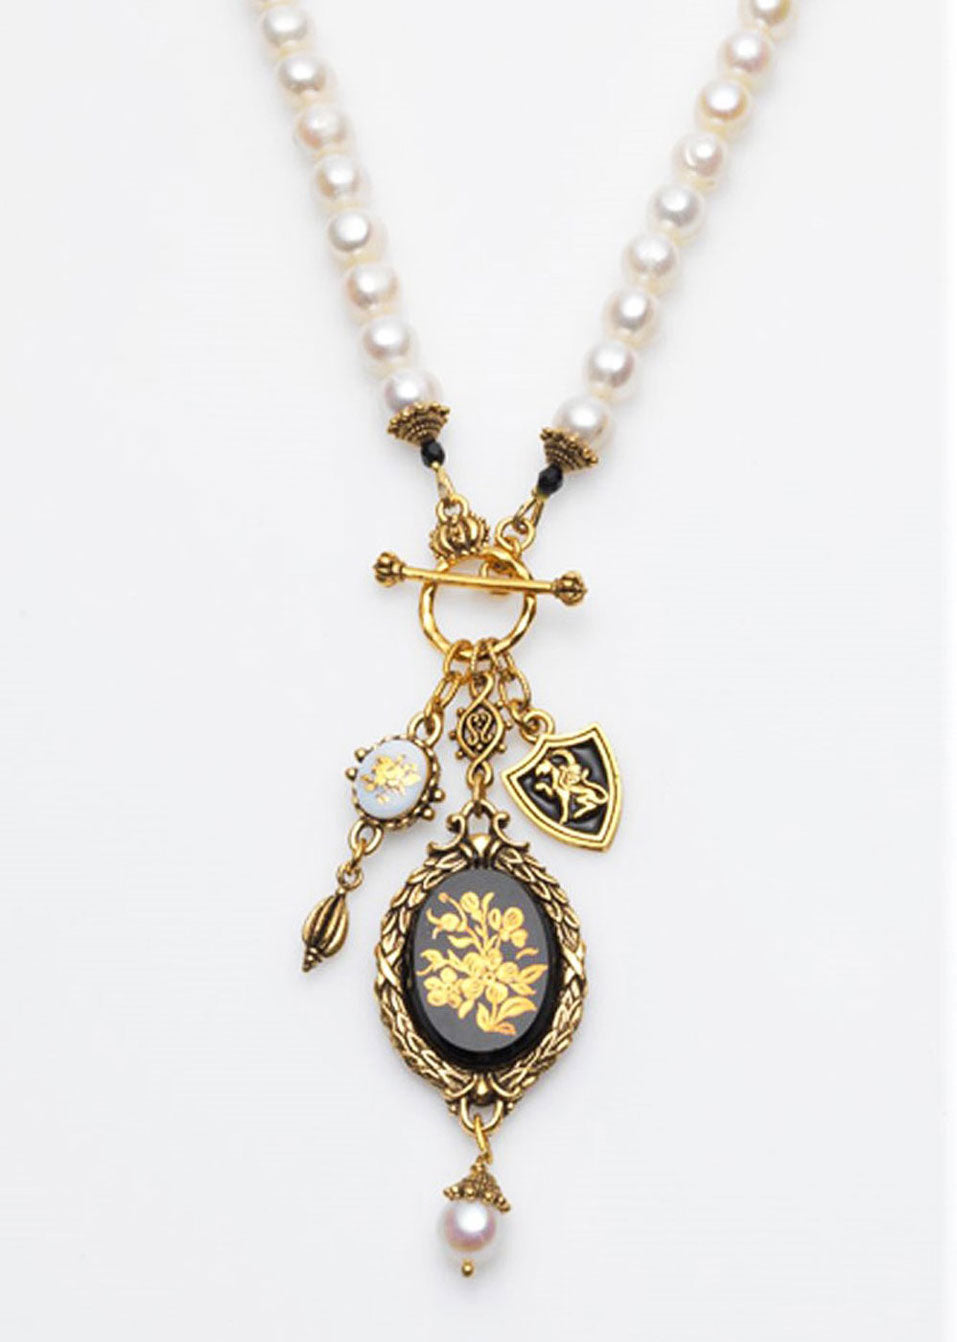 Vintage Black & White Charm Necklace